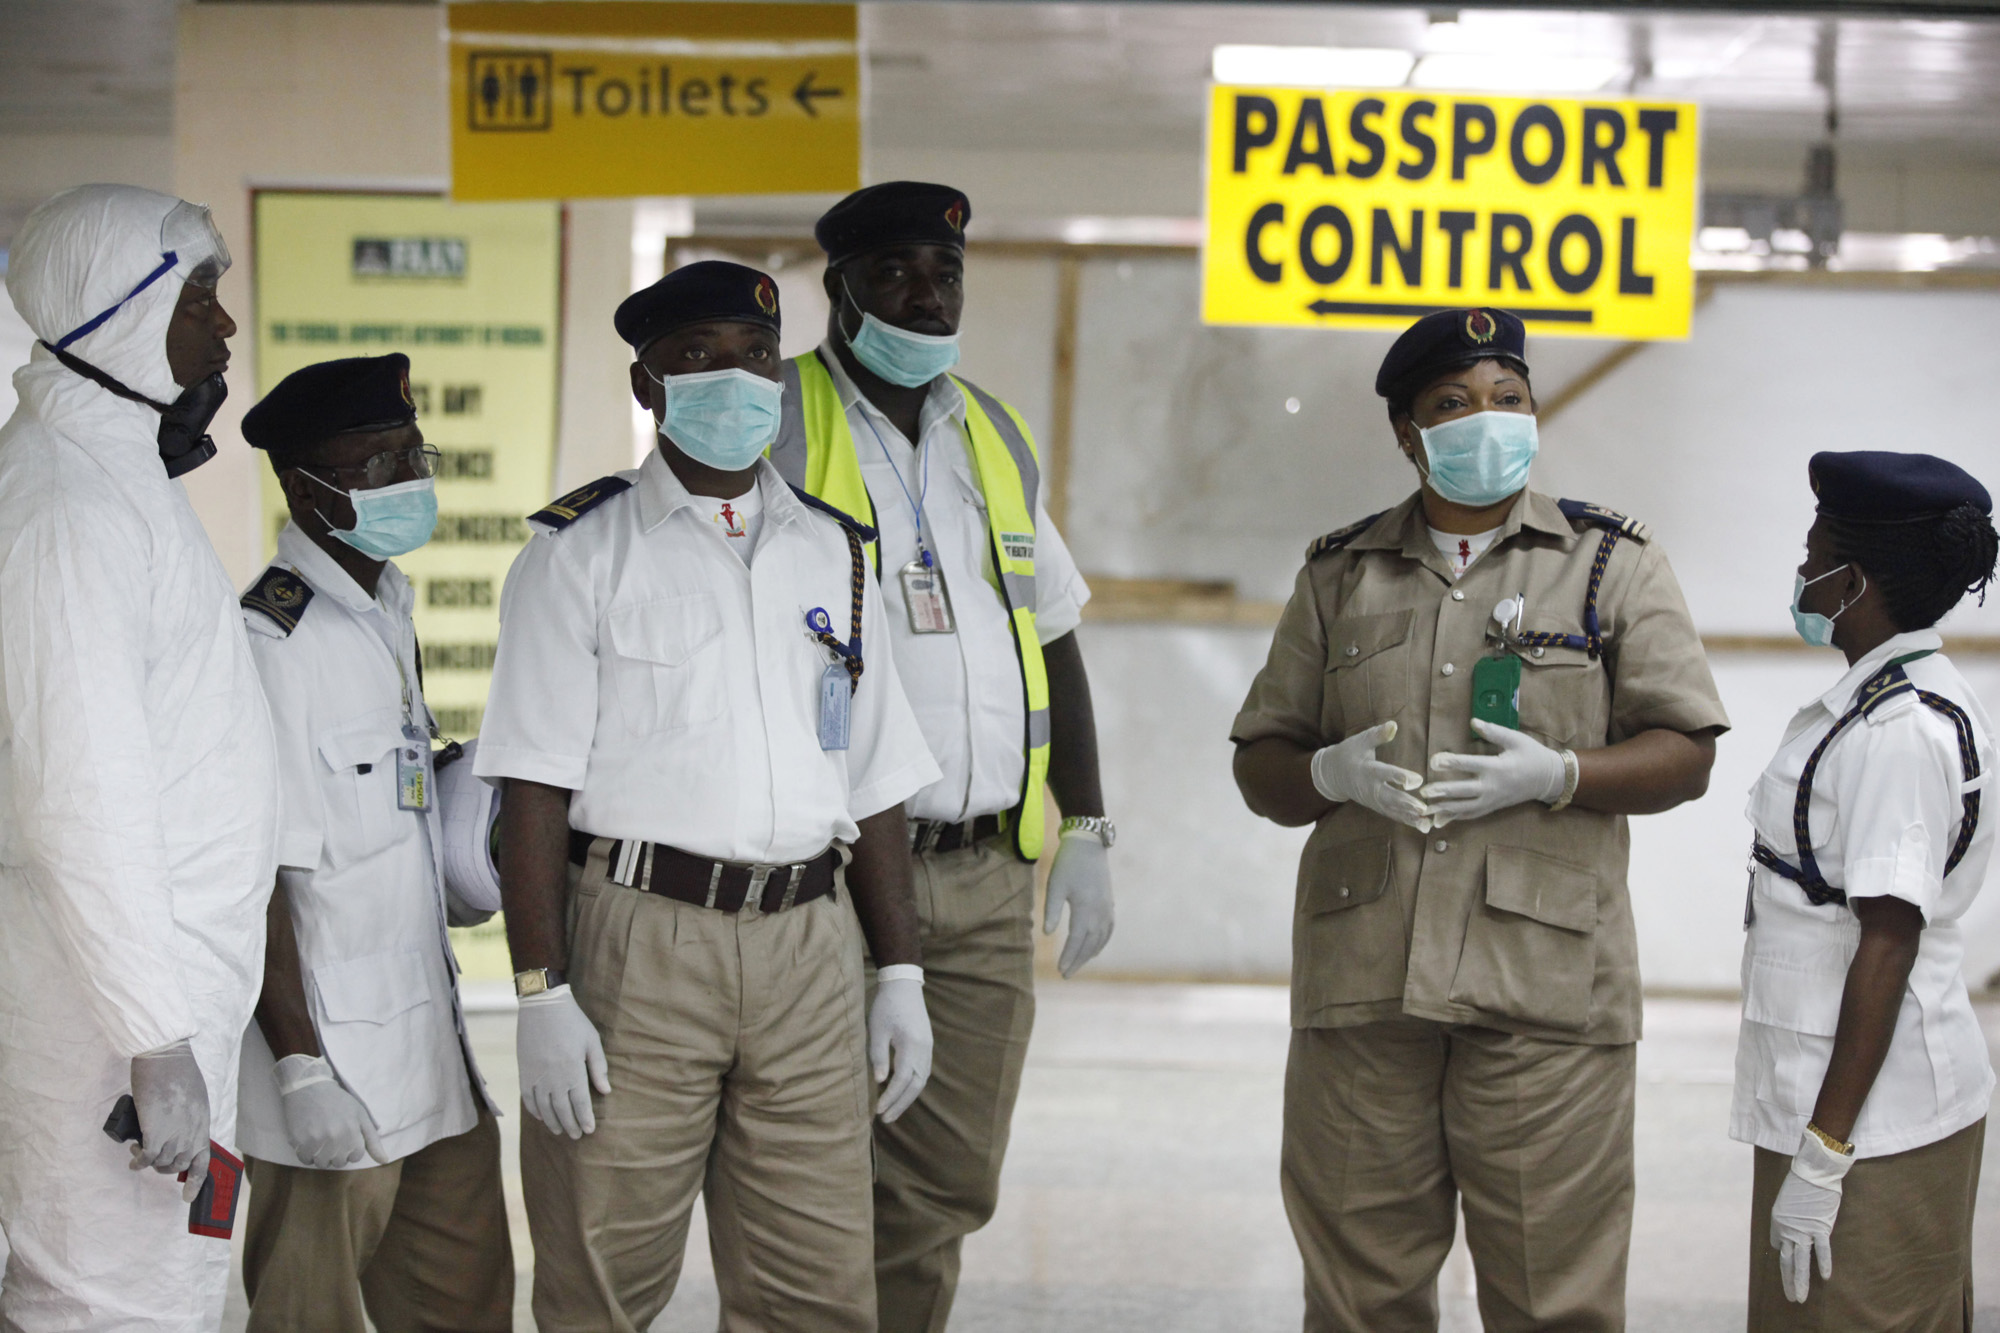 Nigeria health officials wait to screen passengers at the arrival hall of Murtala Muhammed International Airport in Lagos, Nigeria, Aug. 4, 2014.